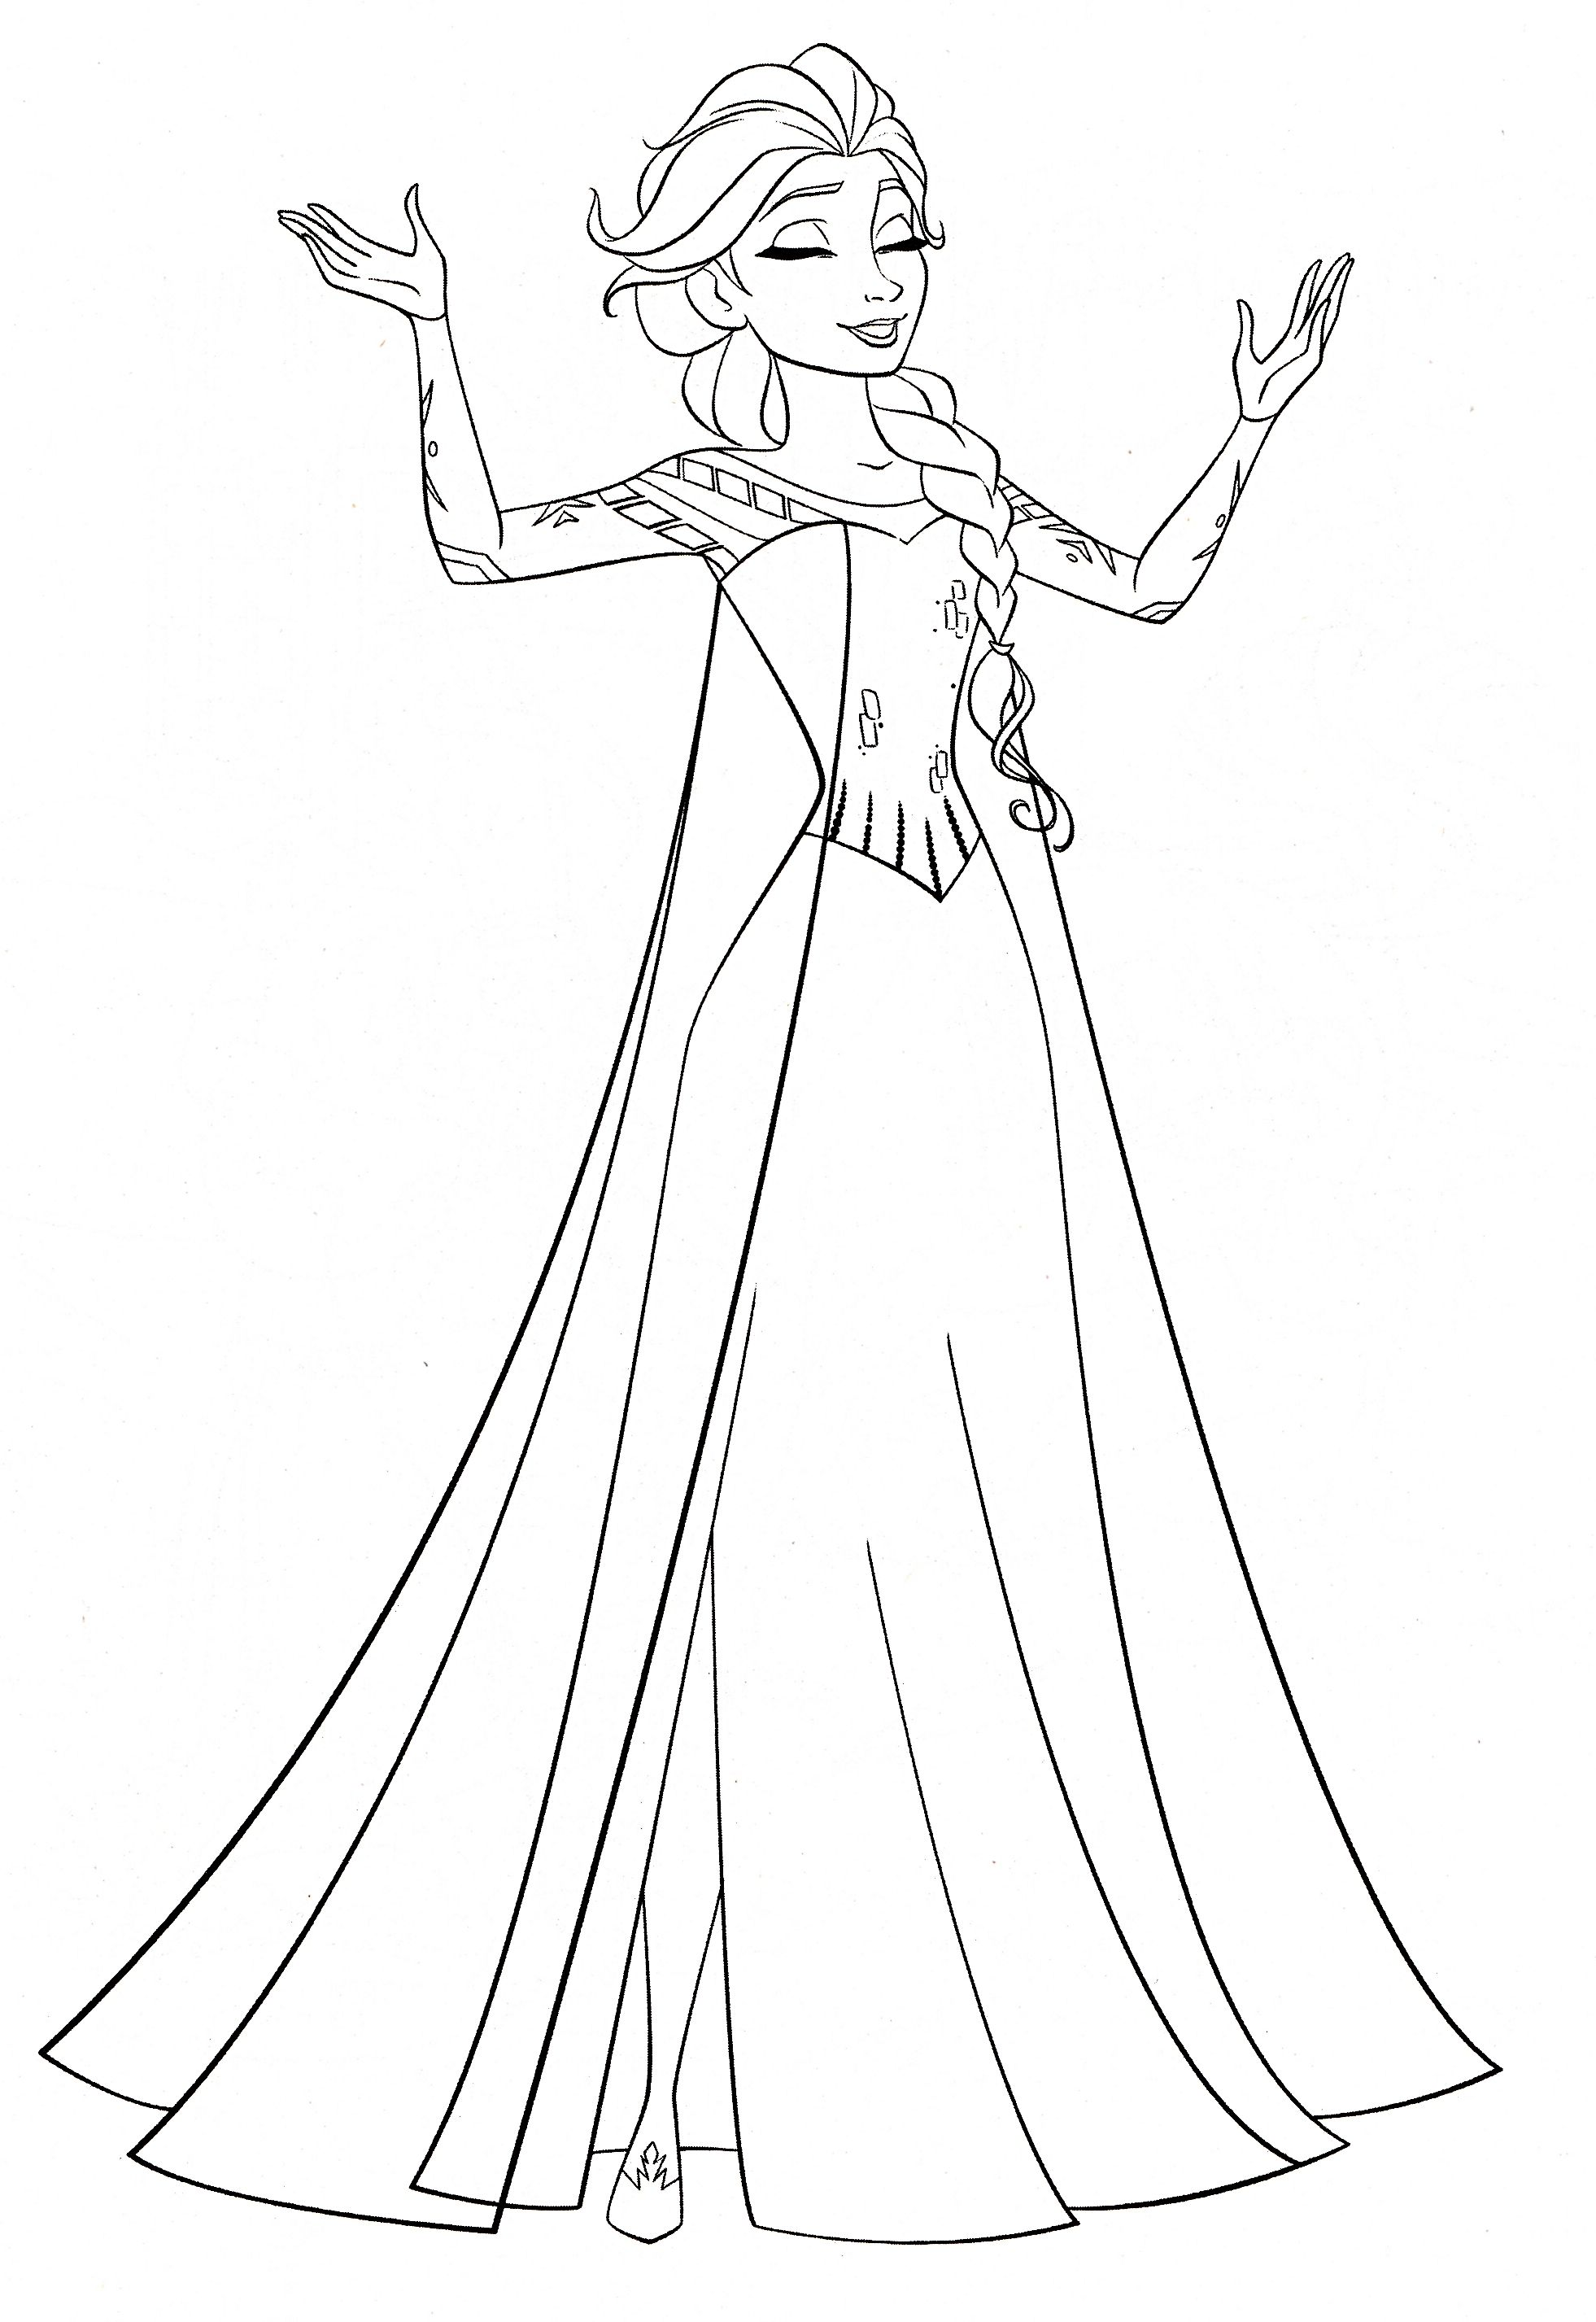 Frozen Coloring Pages Elsa Let It Go Coloring Pages Pinterest Elsa